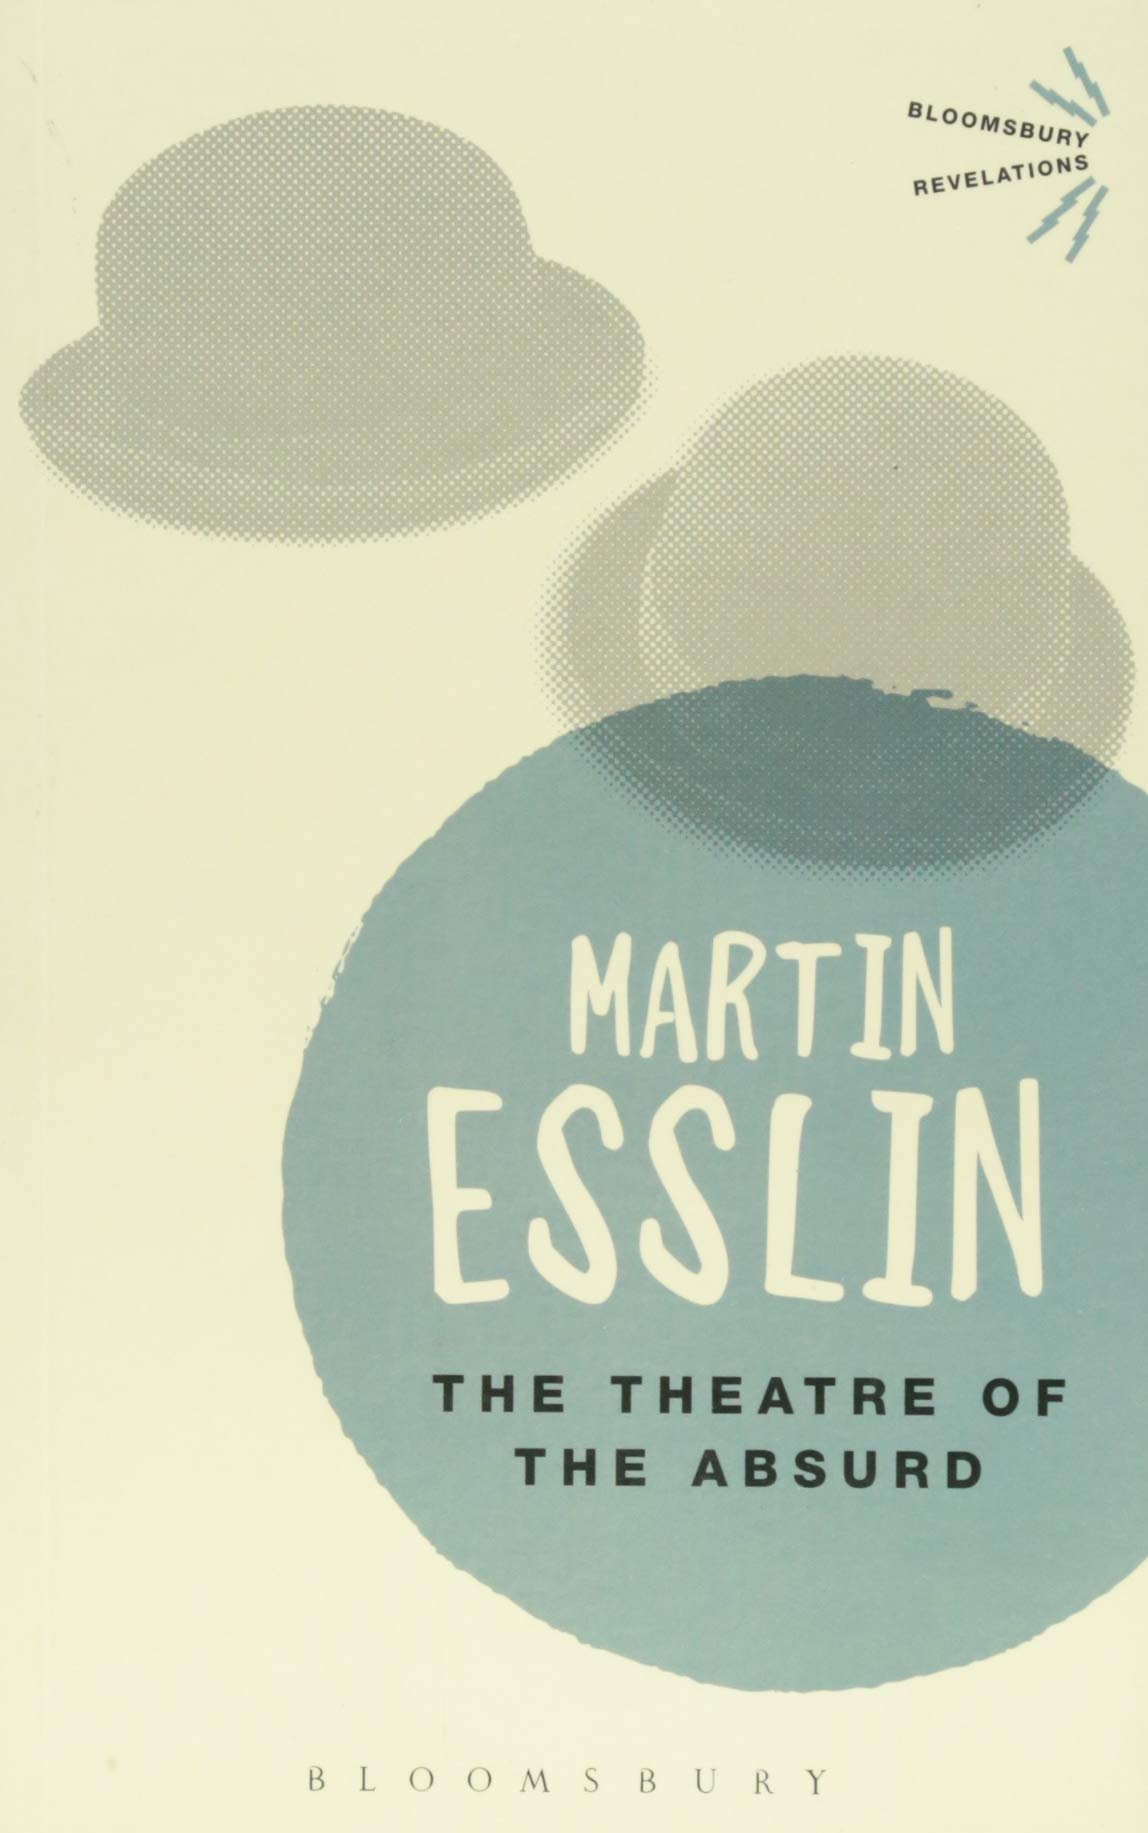 The absurd martin esslin pdf the theatre of